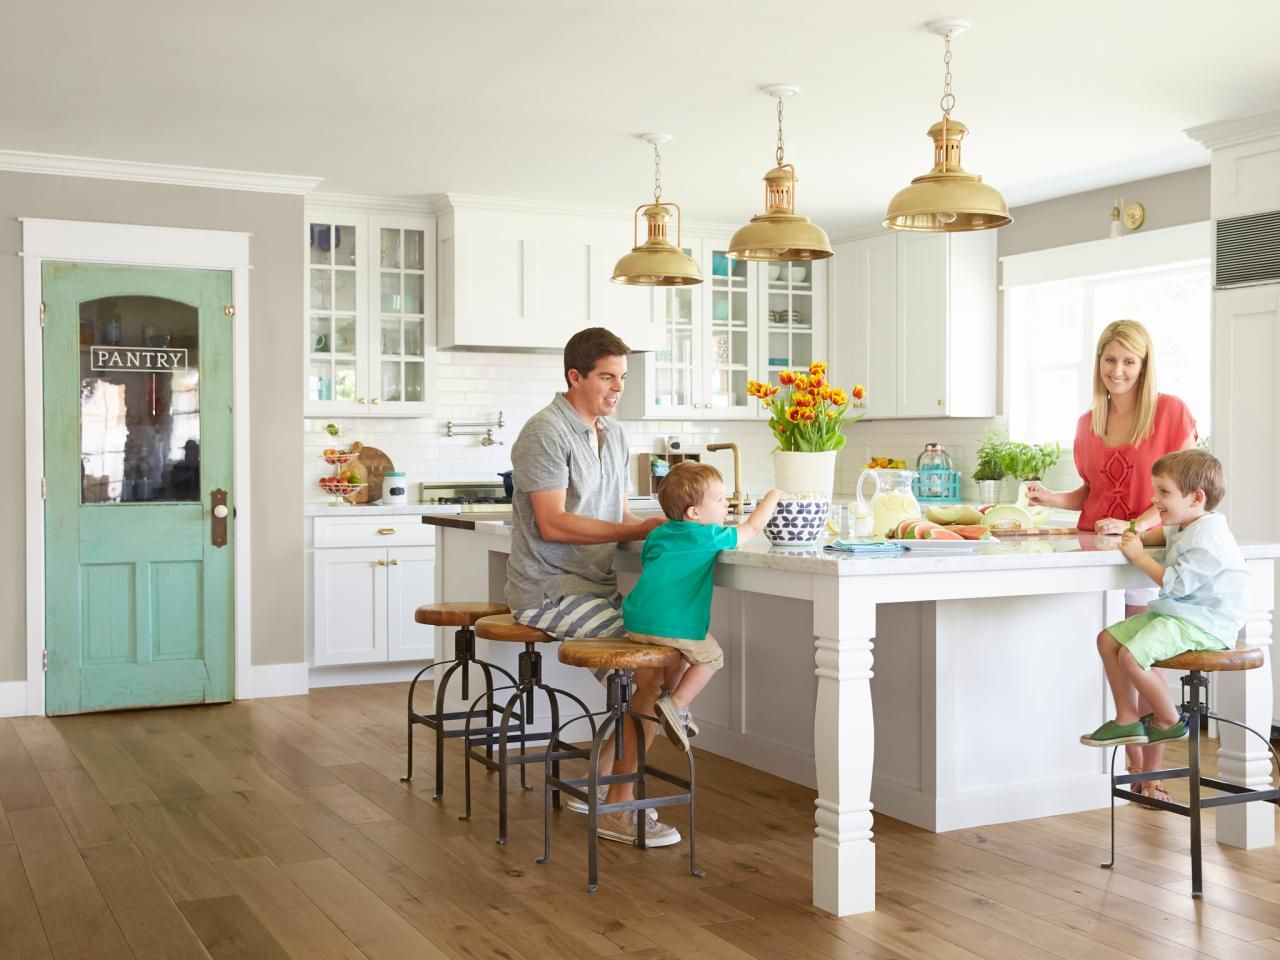 10 Foot Kitchen Island the hand-me-down-house | the old, vintage pantry and pantry